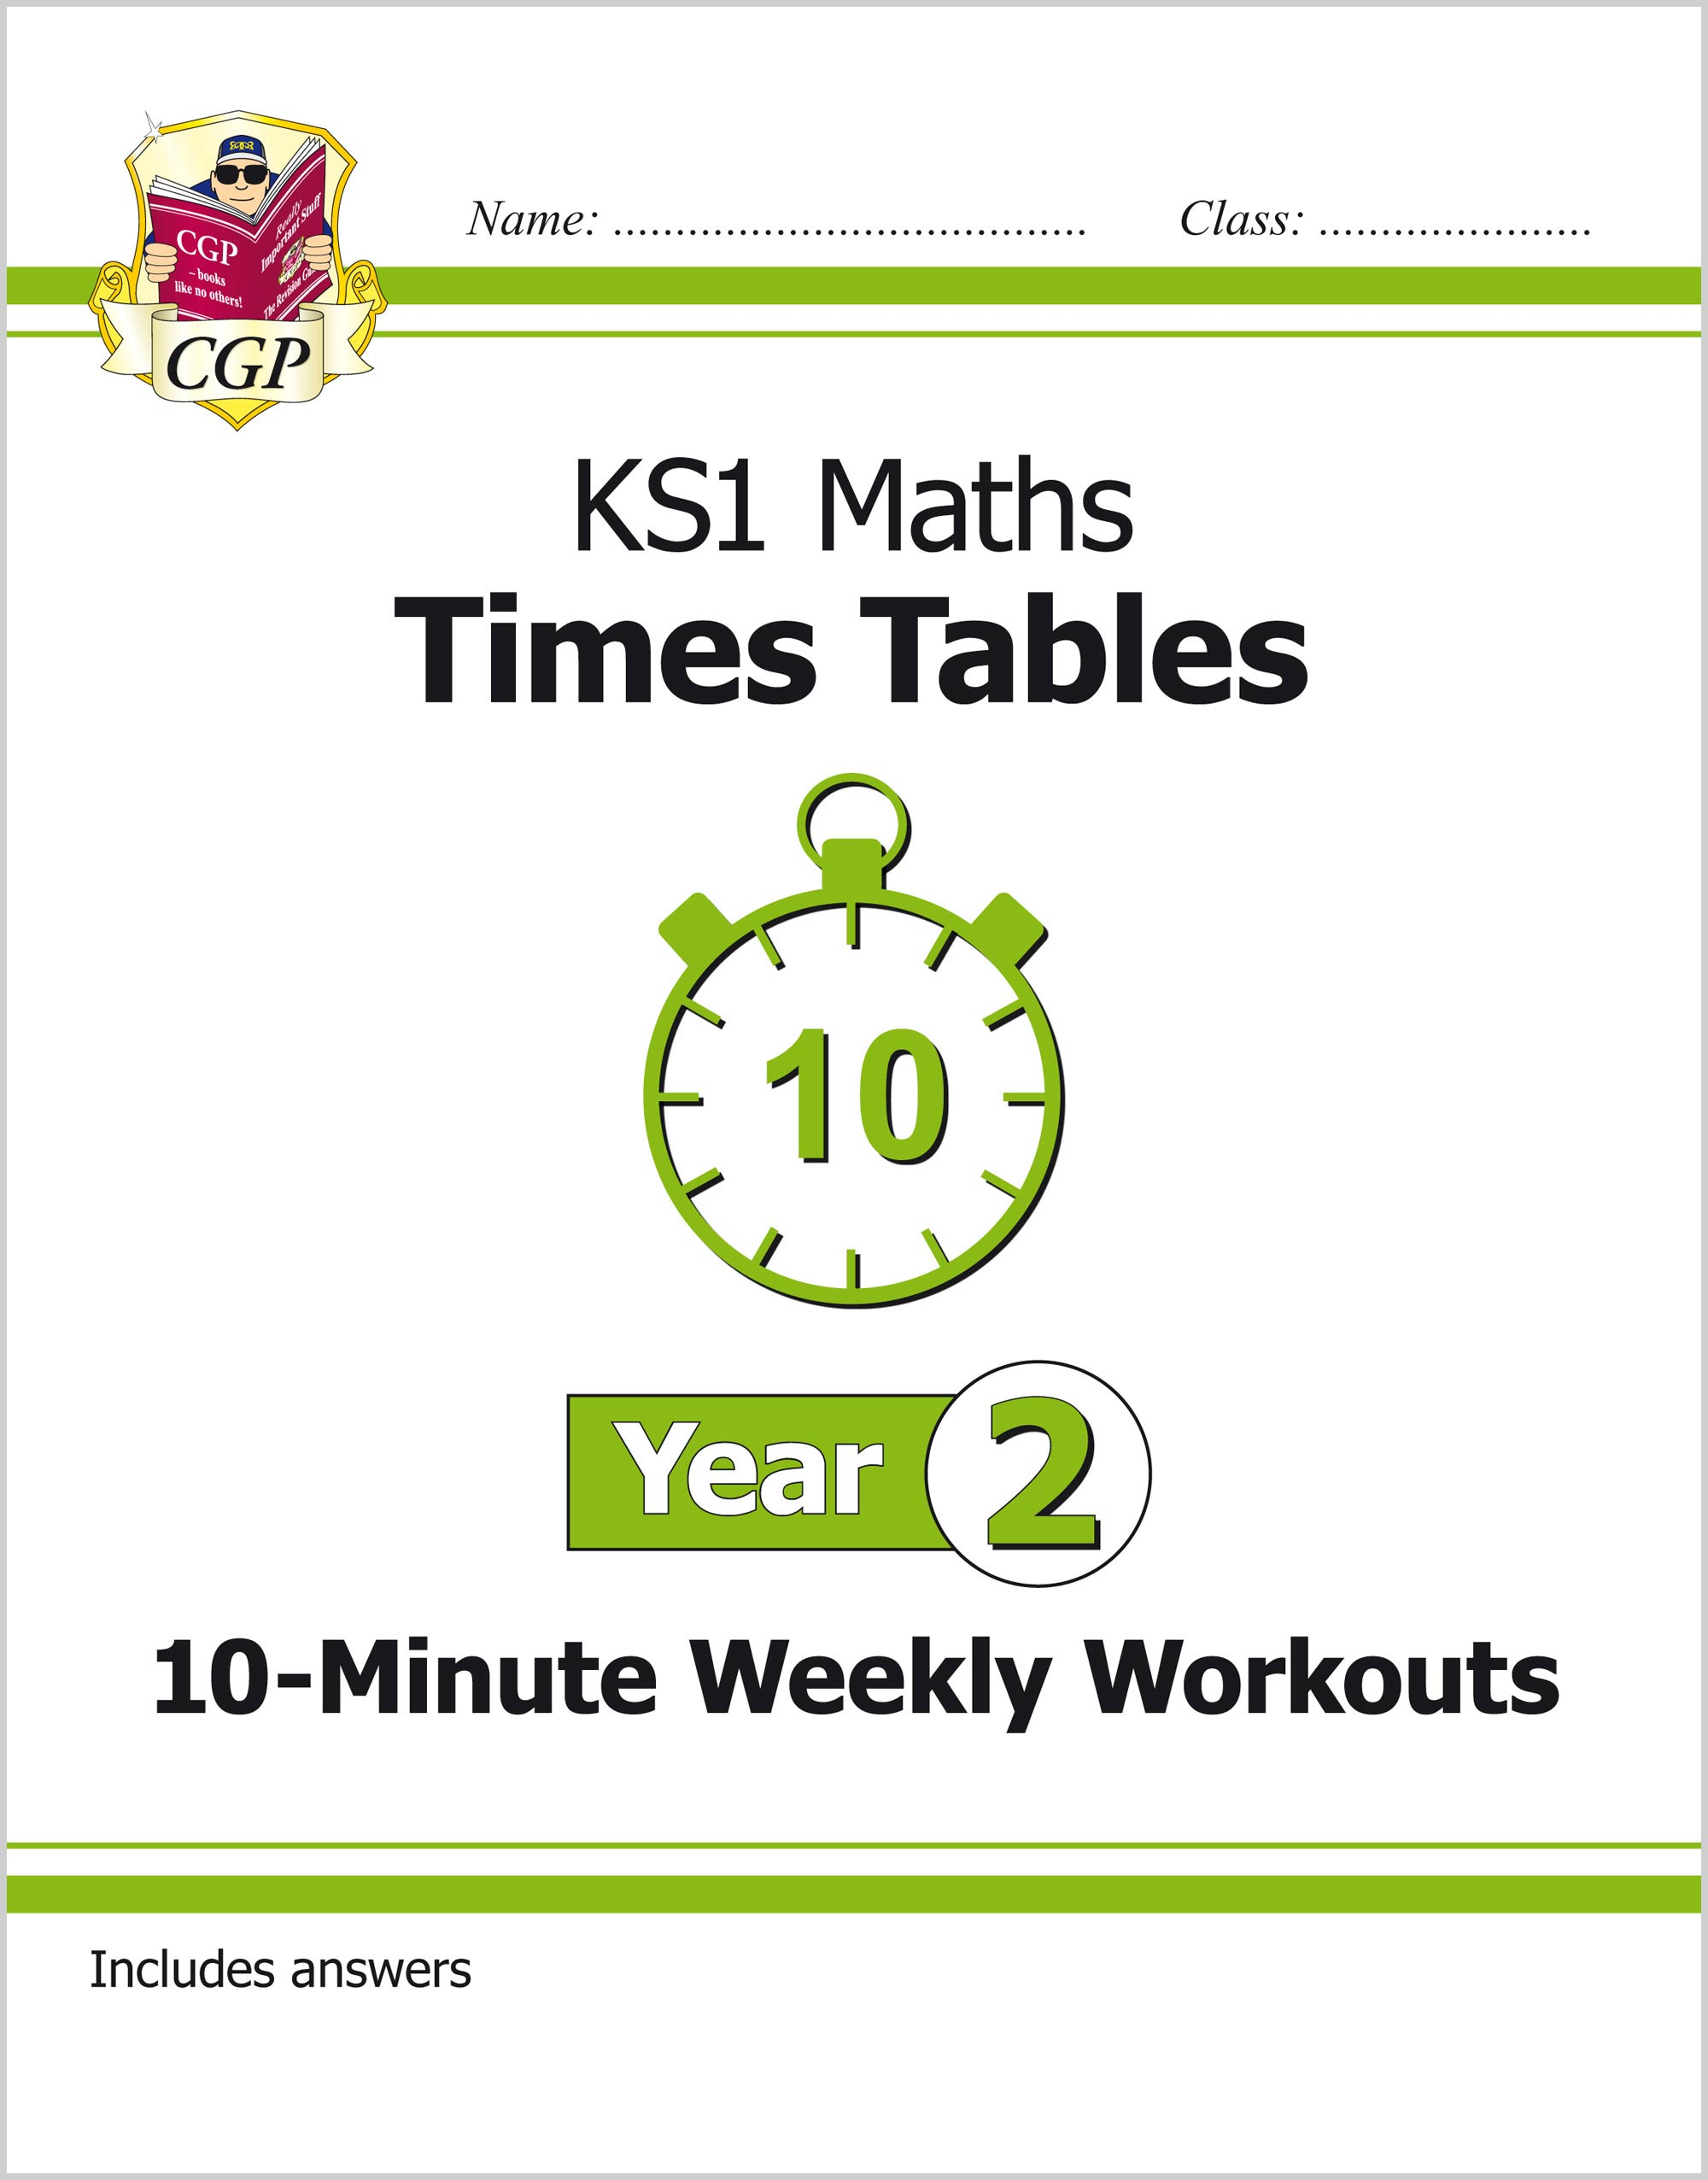 M2TXW11 - New KS1 Maths: Times Tables 10-Minute Weekly Workouts - Year 2